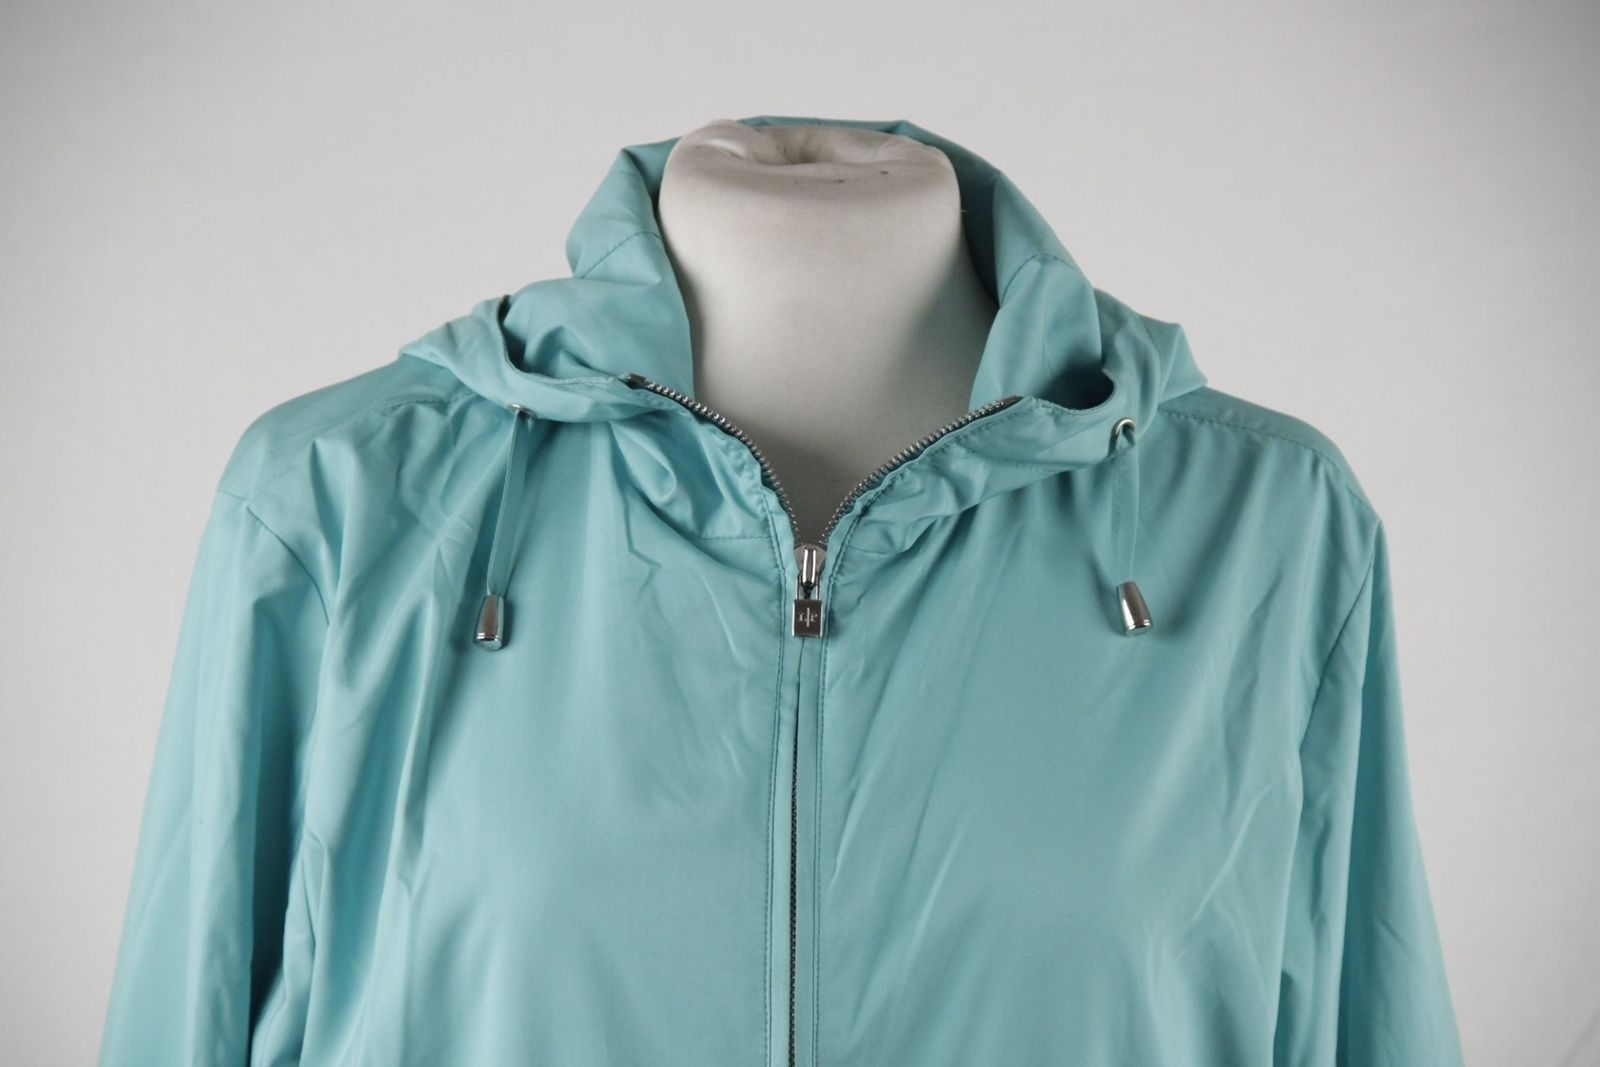 Authentic LORO PIANA Turquoise LIGHT WEIGHT PADDED JACKET Cashmere lining Sz 42